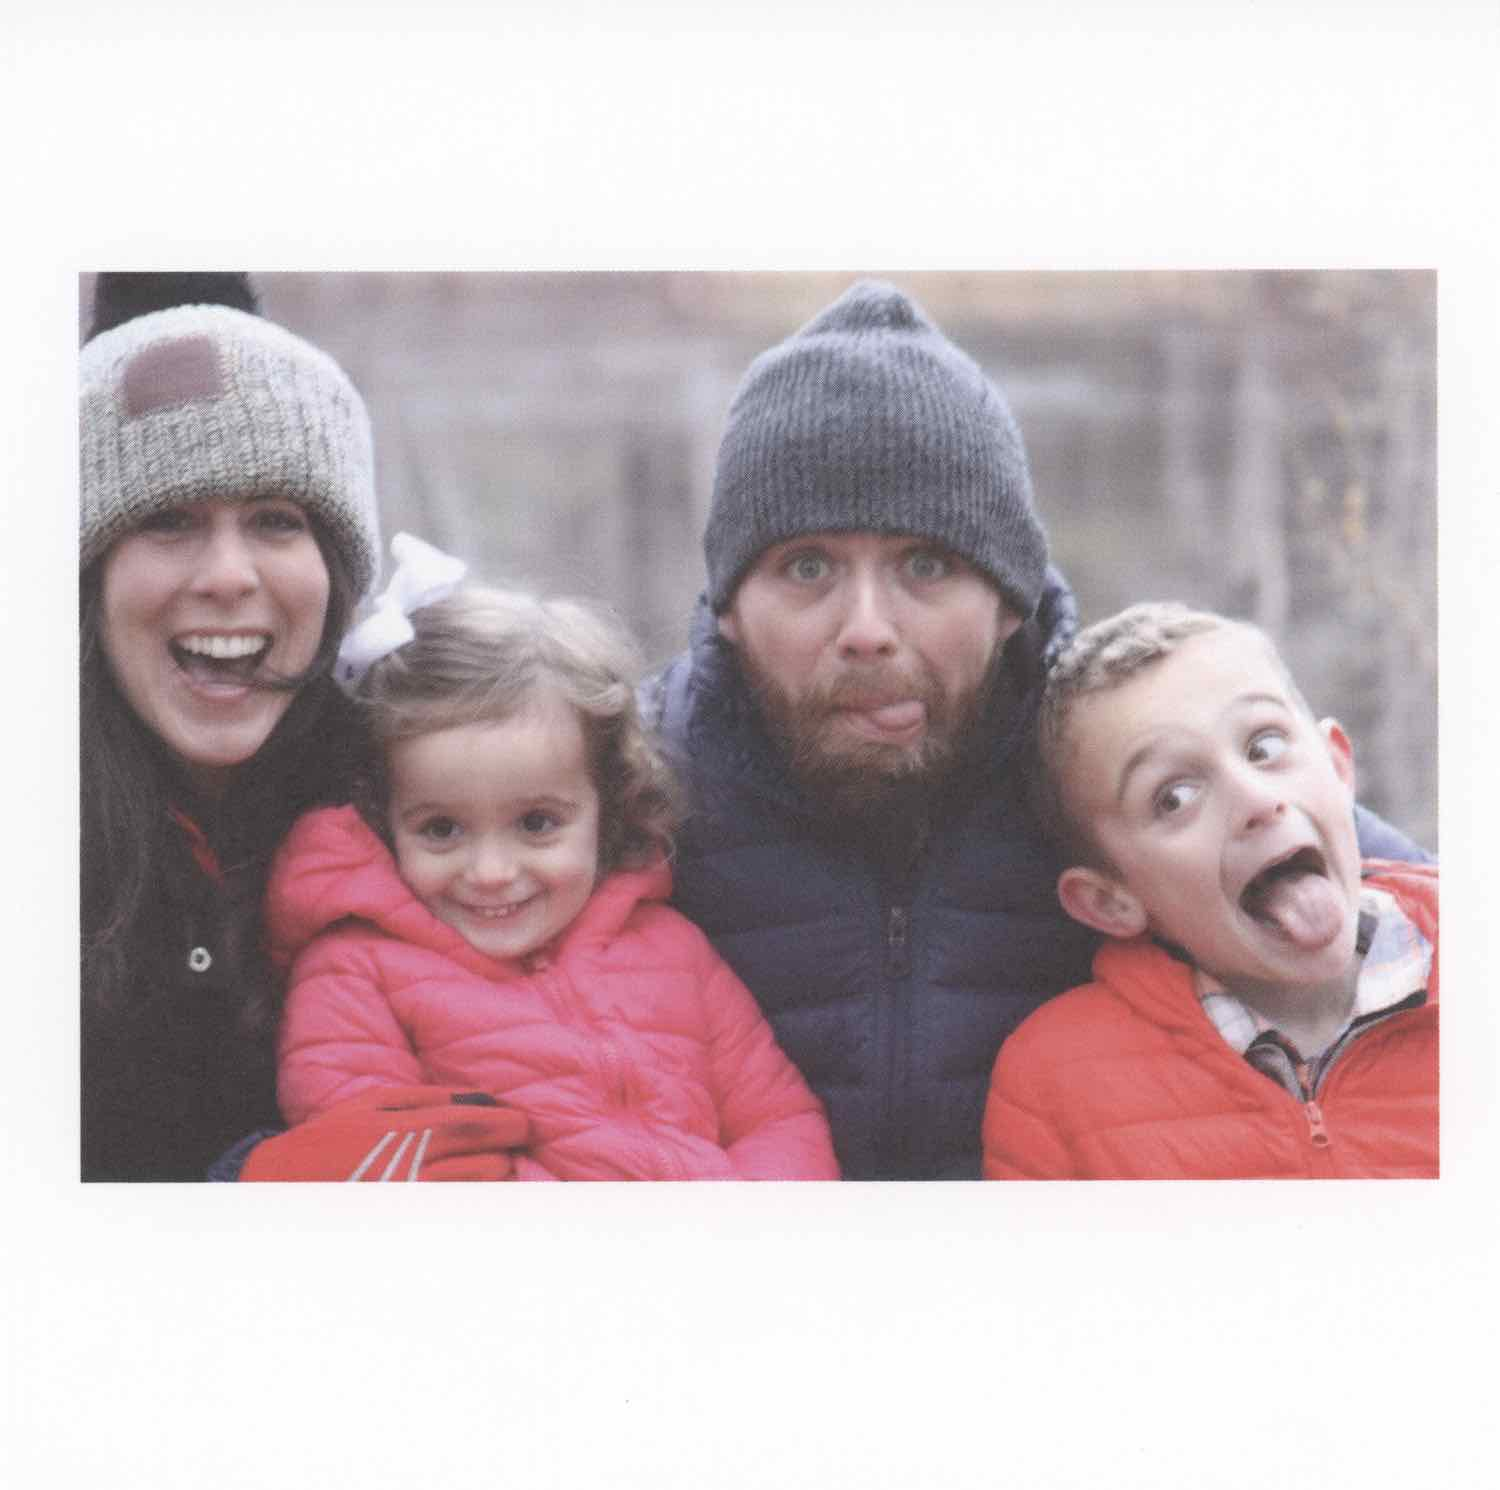 Scan of a photo of adults and two kids in a fun portrait. They're all wearing winter coats. The  adults are wearing winter hats. On the left is a young, beautiful, brunette woman smiling big, wearing a light brown winter hat with a leather patch. A cute little girl is to her right, they're all close together, wearing a pink puffy jacket with a white bow in her dirty blonde hair. Next to the girl is a man wearing a blue winter hat and a navy puff jacket, his tongue slightly sticking out and his beard a brown-red. To the man's right is a boy, a few years older than the girl, wearing a red puffy jacket and a flannel under it, his tongue fully out and his eyes wide. They're all having a blast.